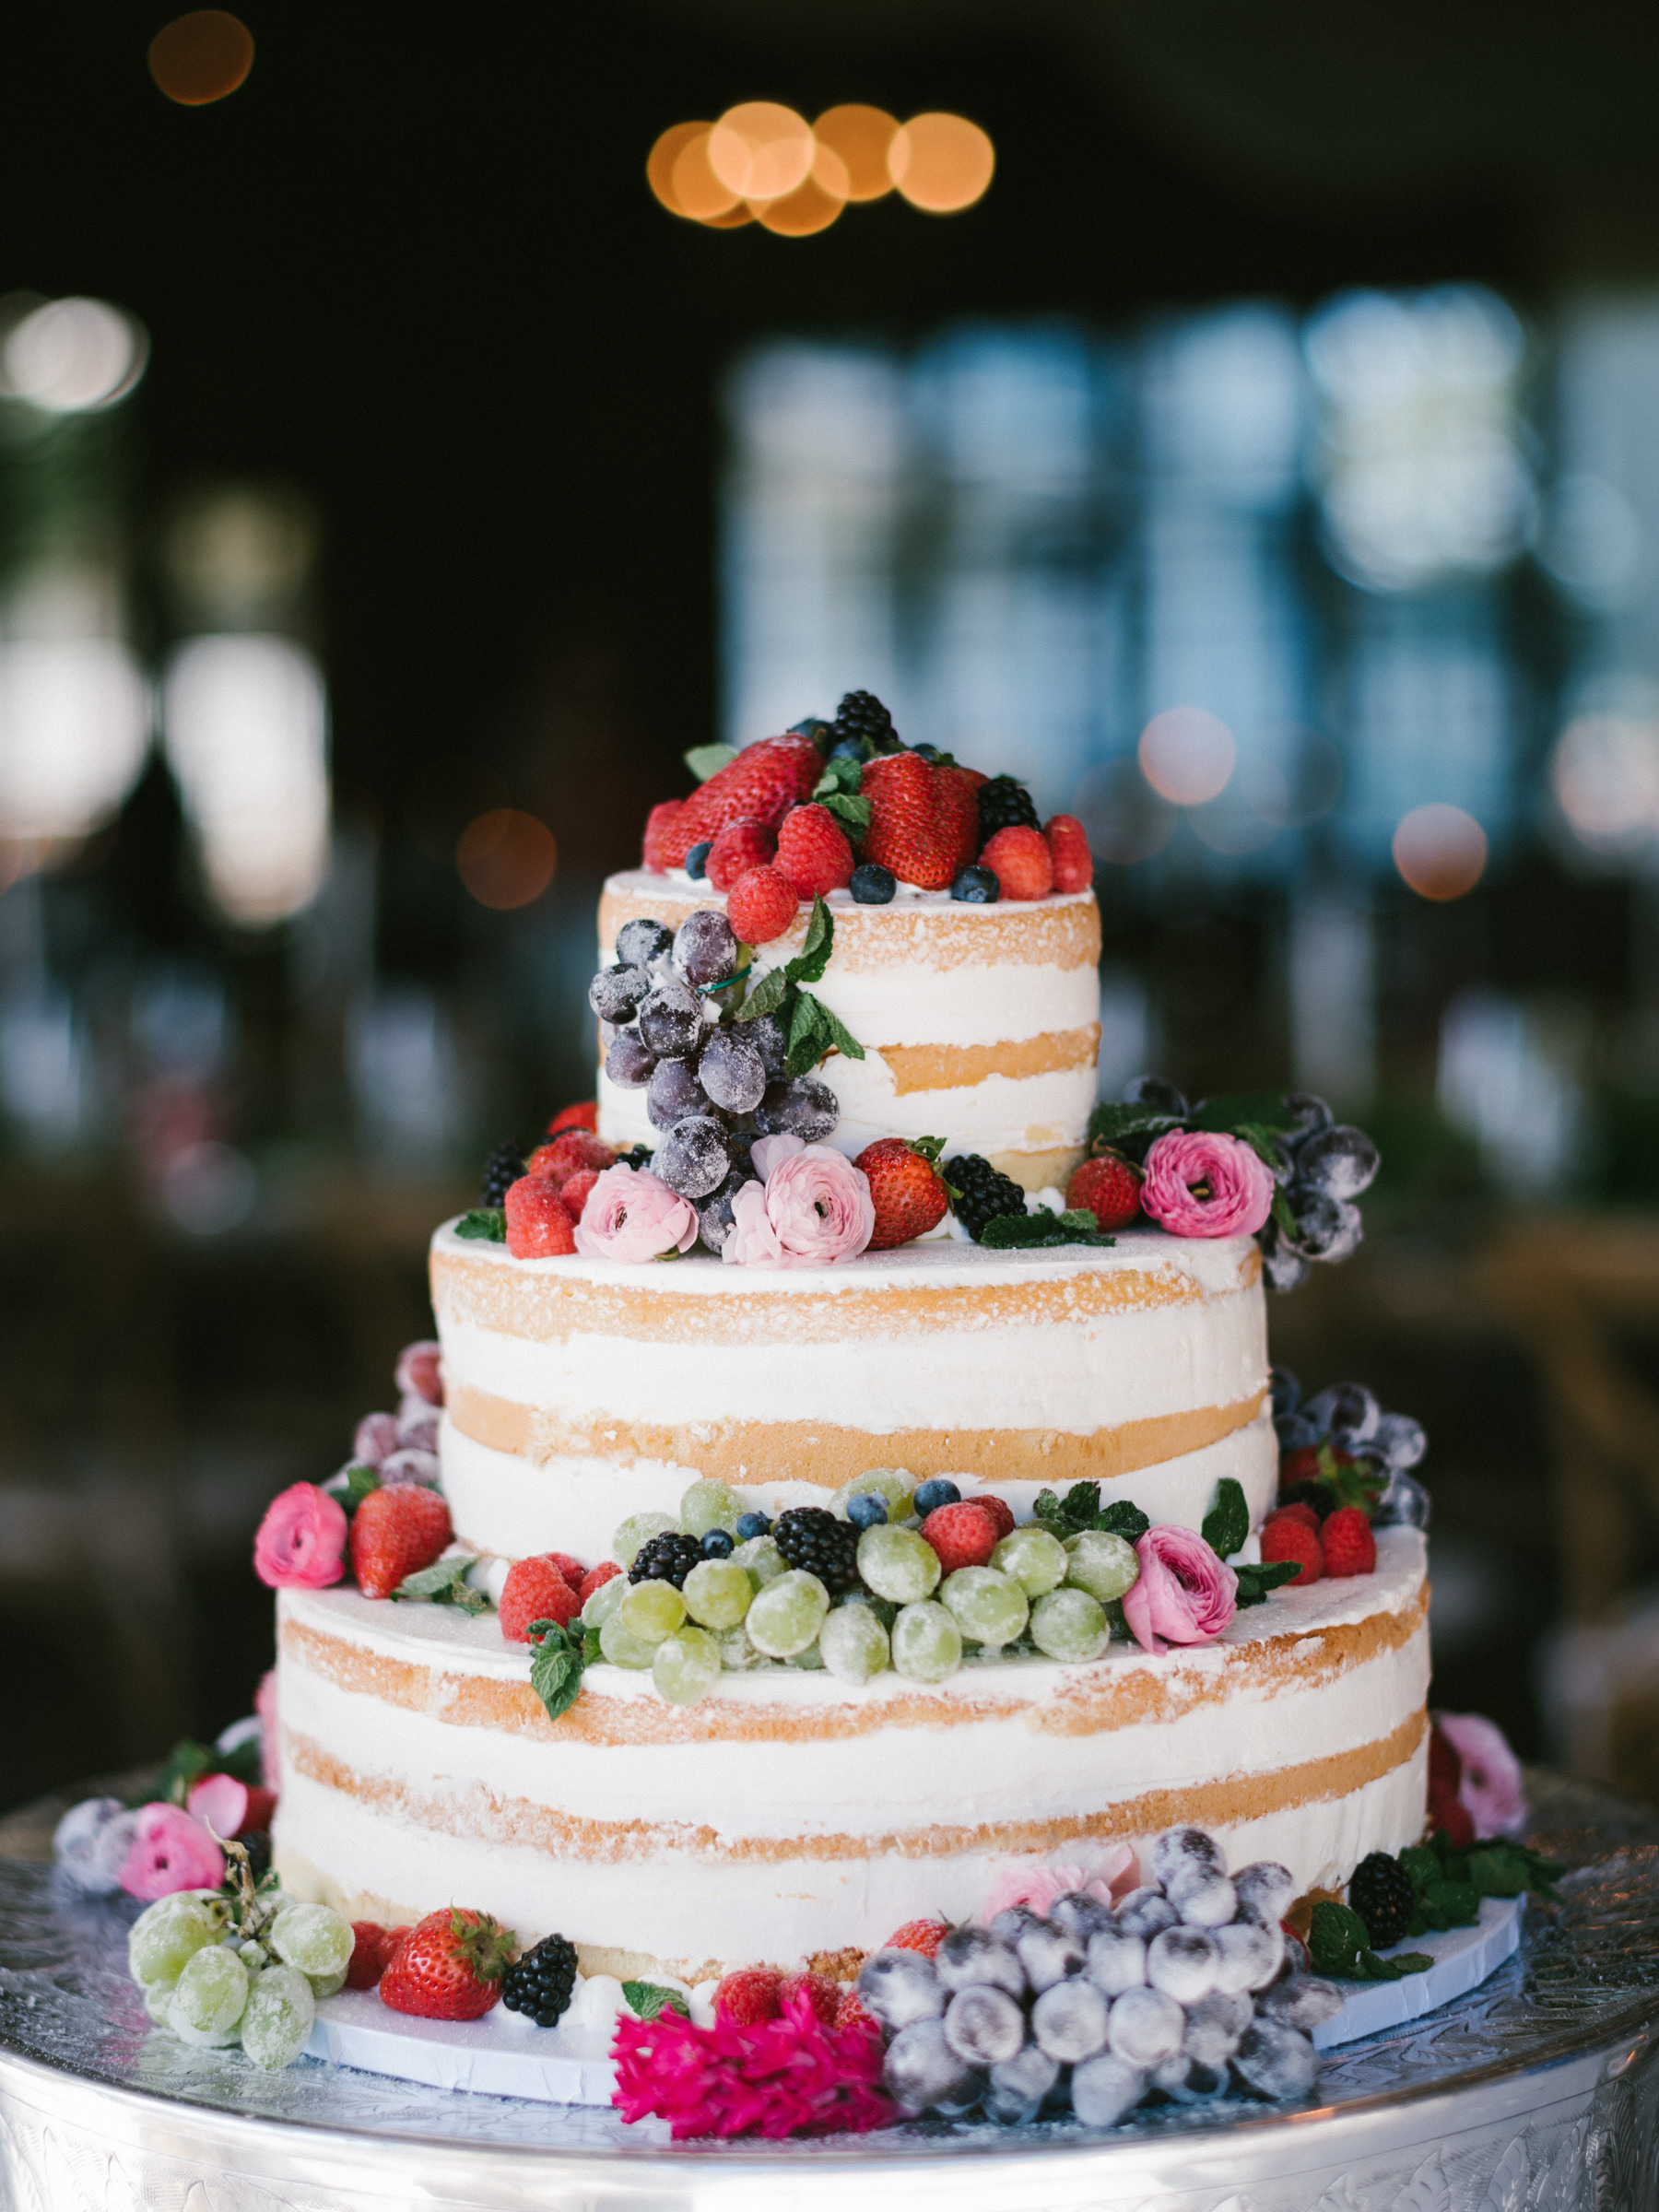 Wedding cake with colorful strawberries, fruits, and flowers - photo by Amy and Stuart Photography